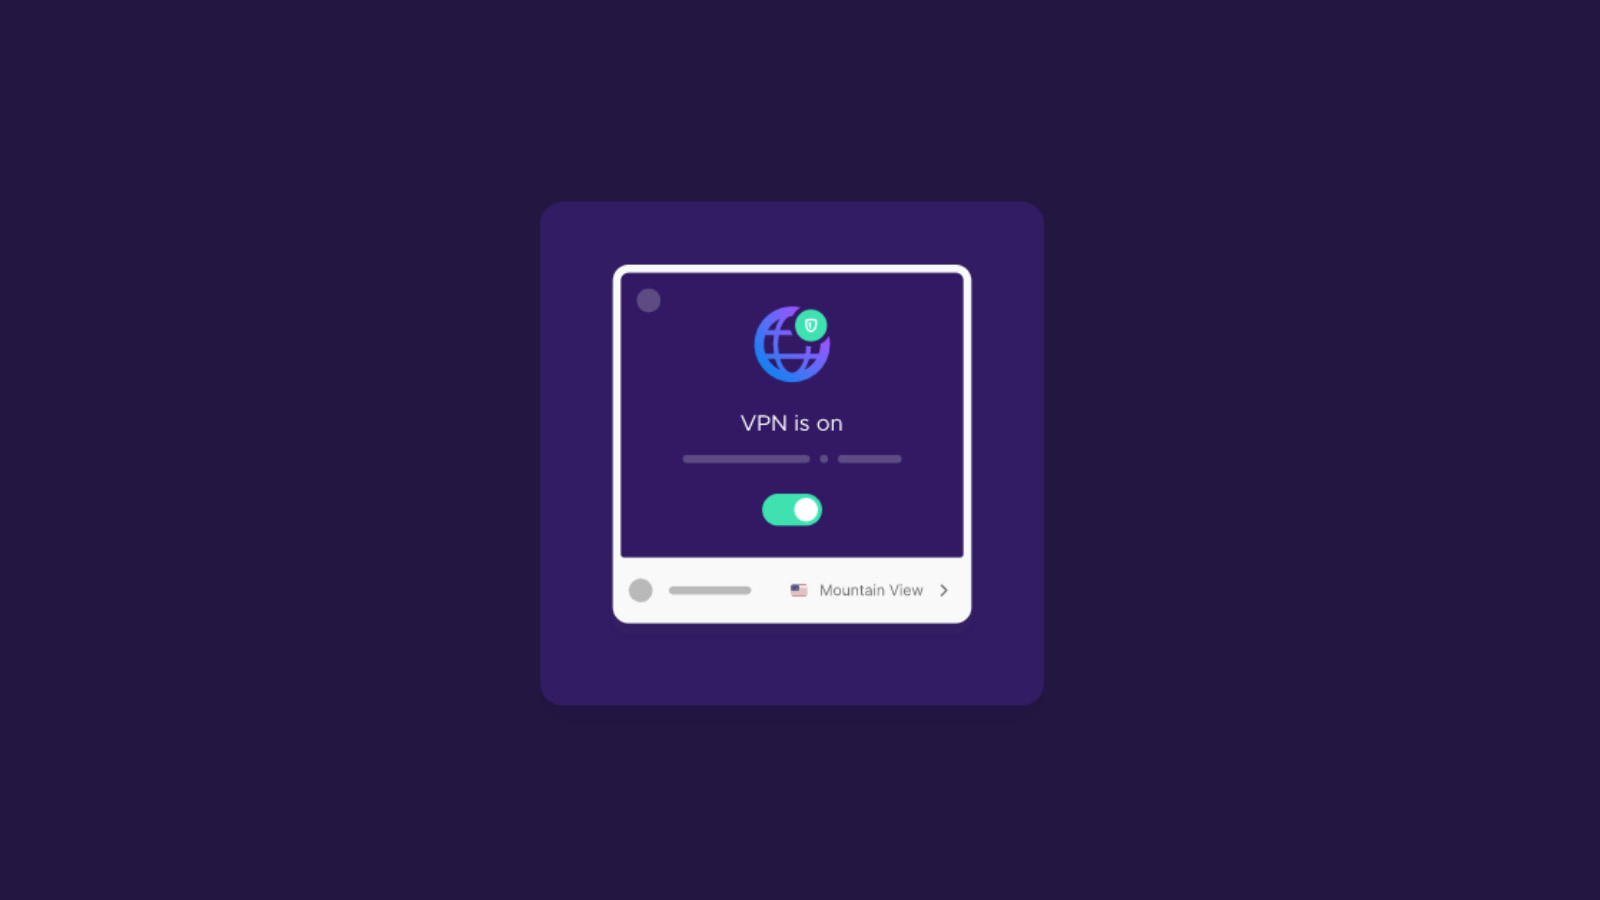 [Updated] Firefox creator Mozilla launches standalone VPN for Android, Chrome OS and Windows